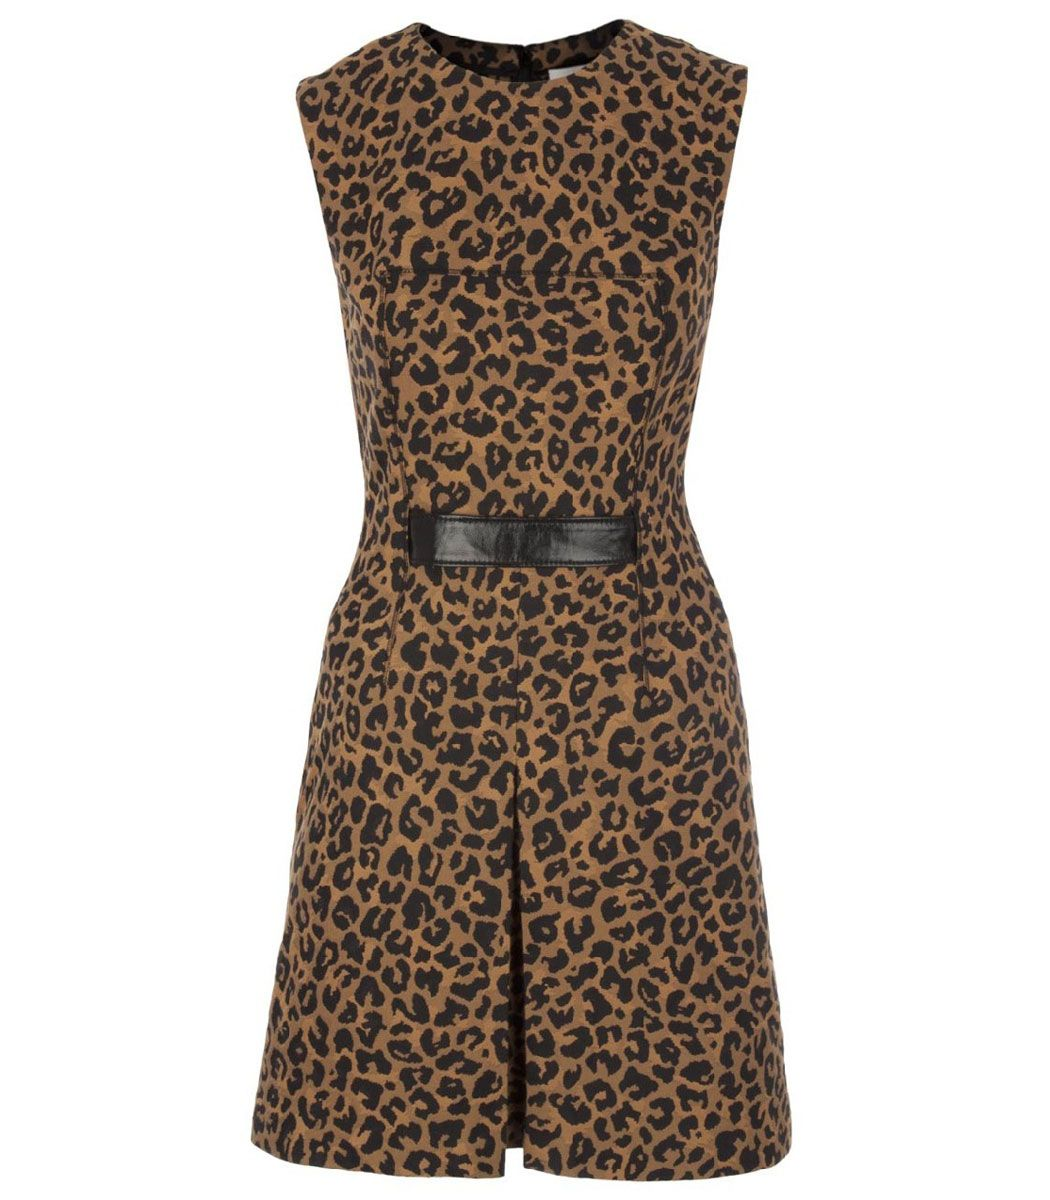 54133ab264 3.1 Phillip Lim Sleeveless Leopard Print Dress - Cat s Meow Trend on   ShopBAZAAR